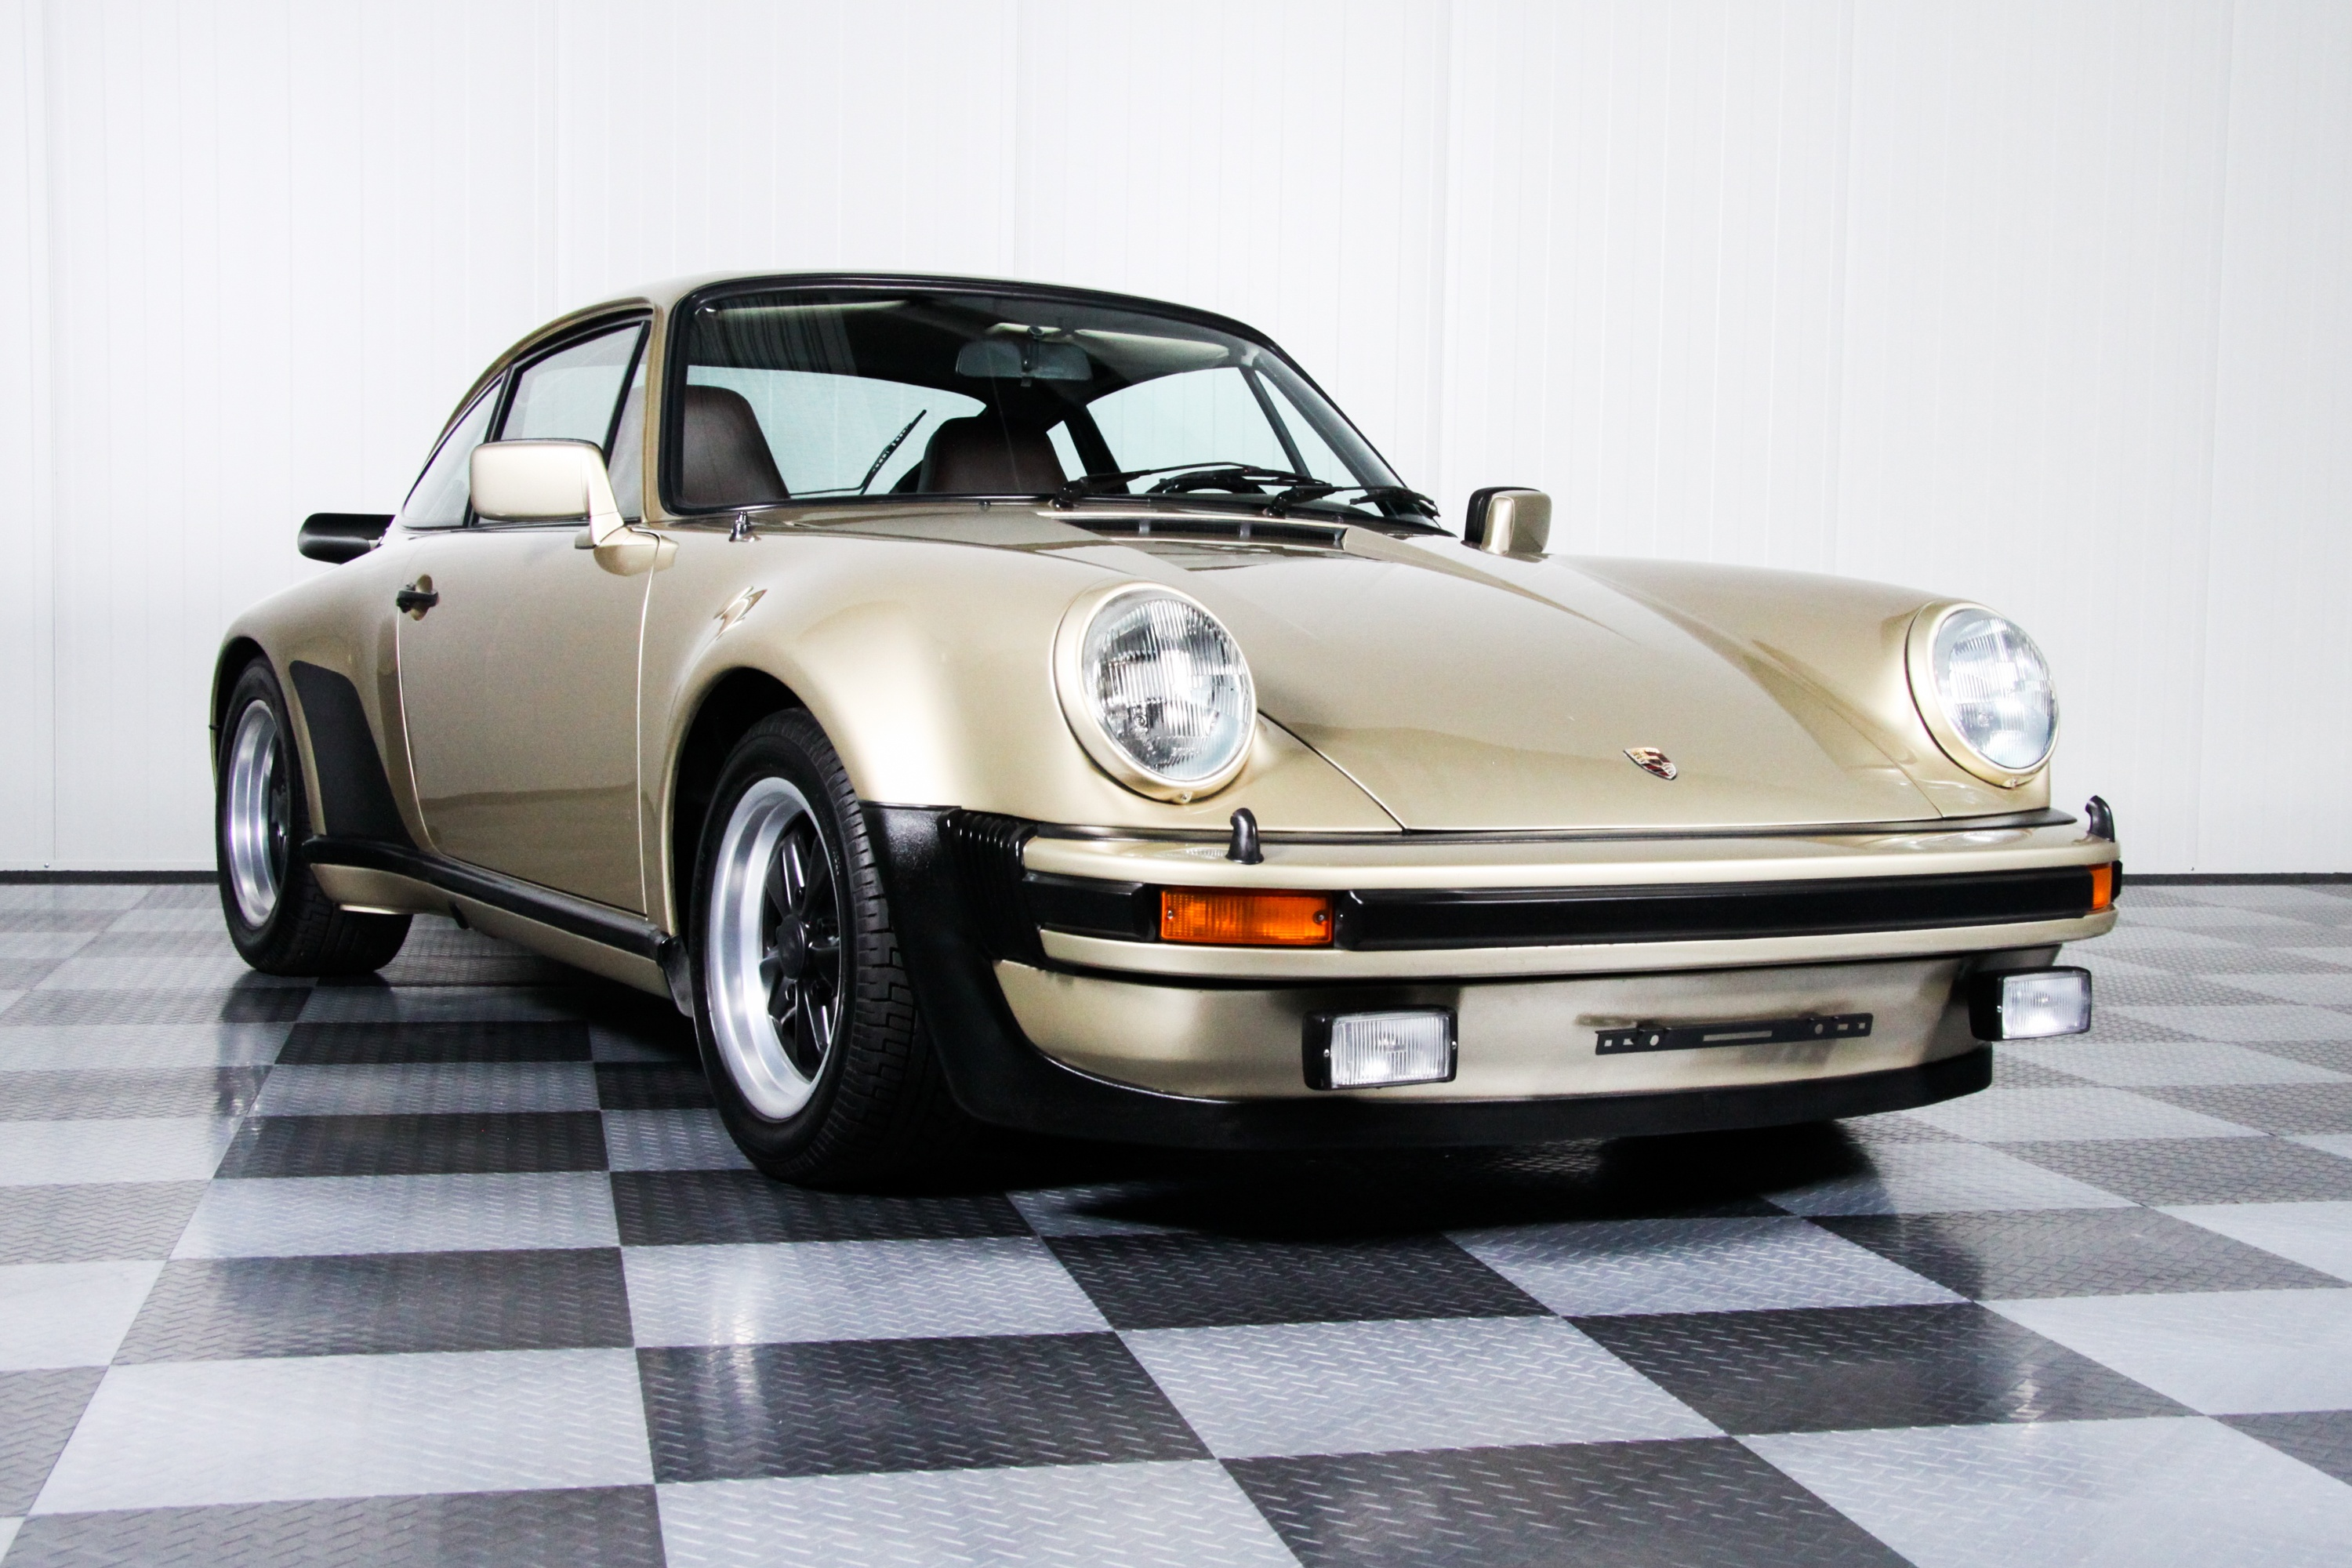 1976 porsche 911 turbo early 1976 eu model german new delivered matching numbers classic driver market